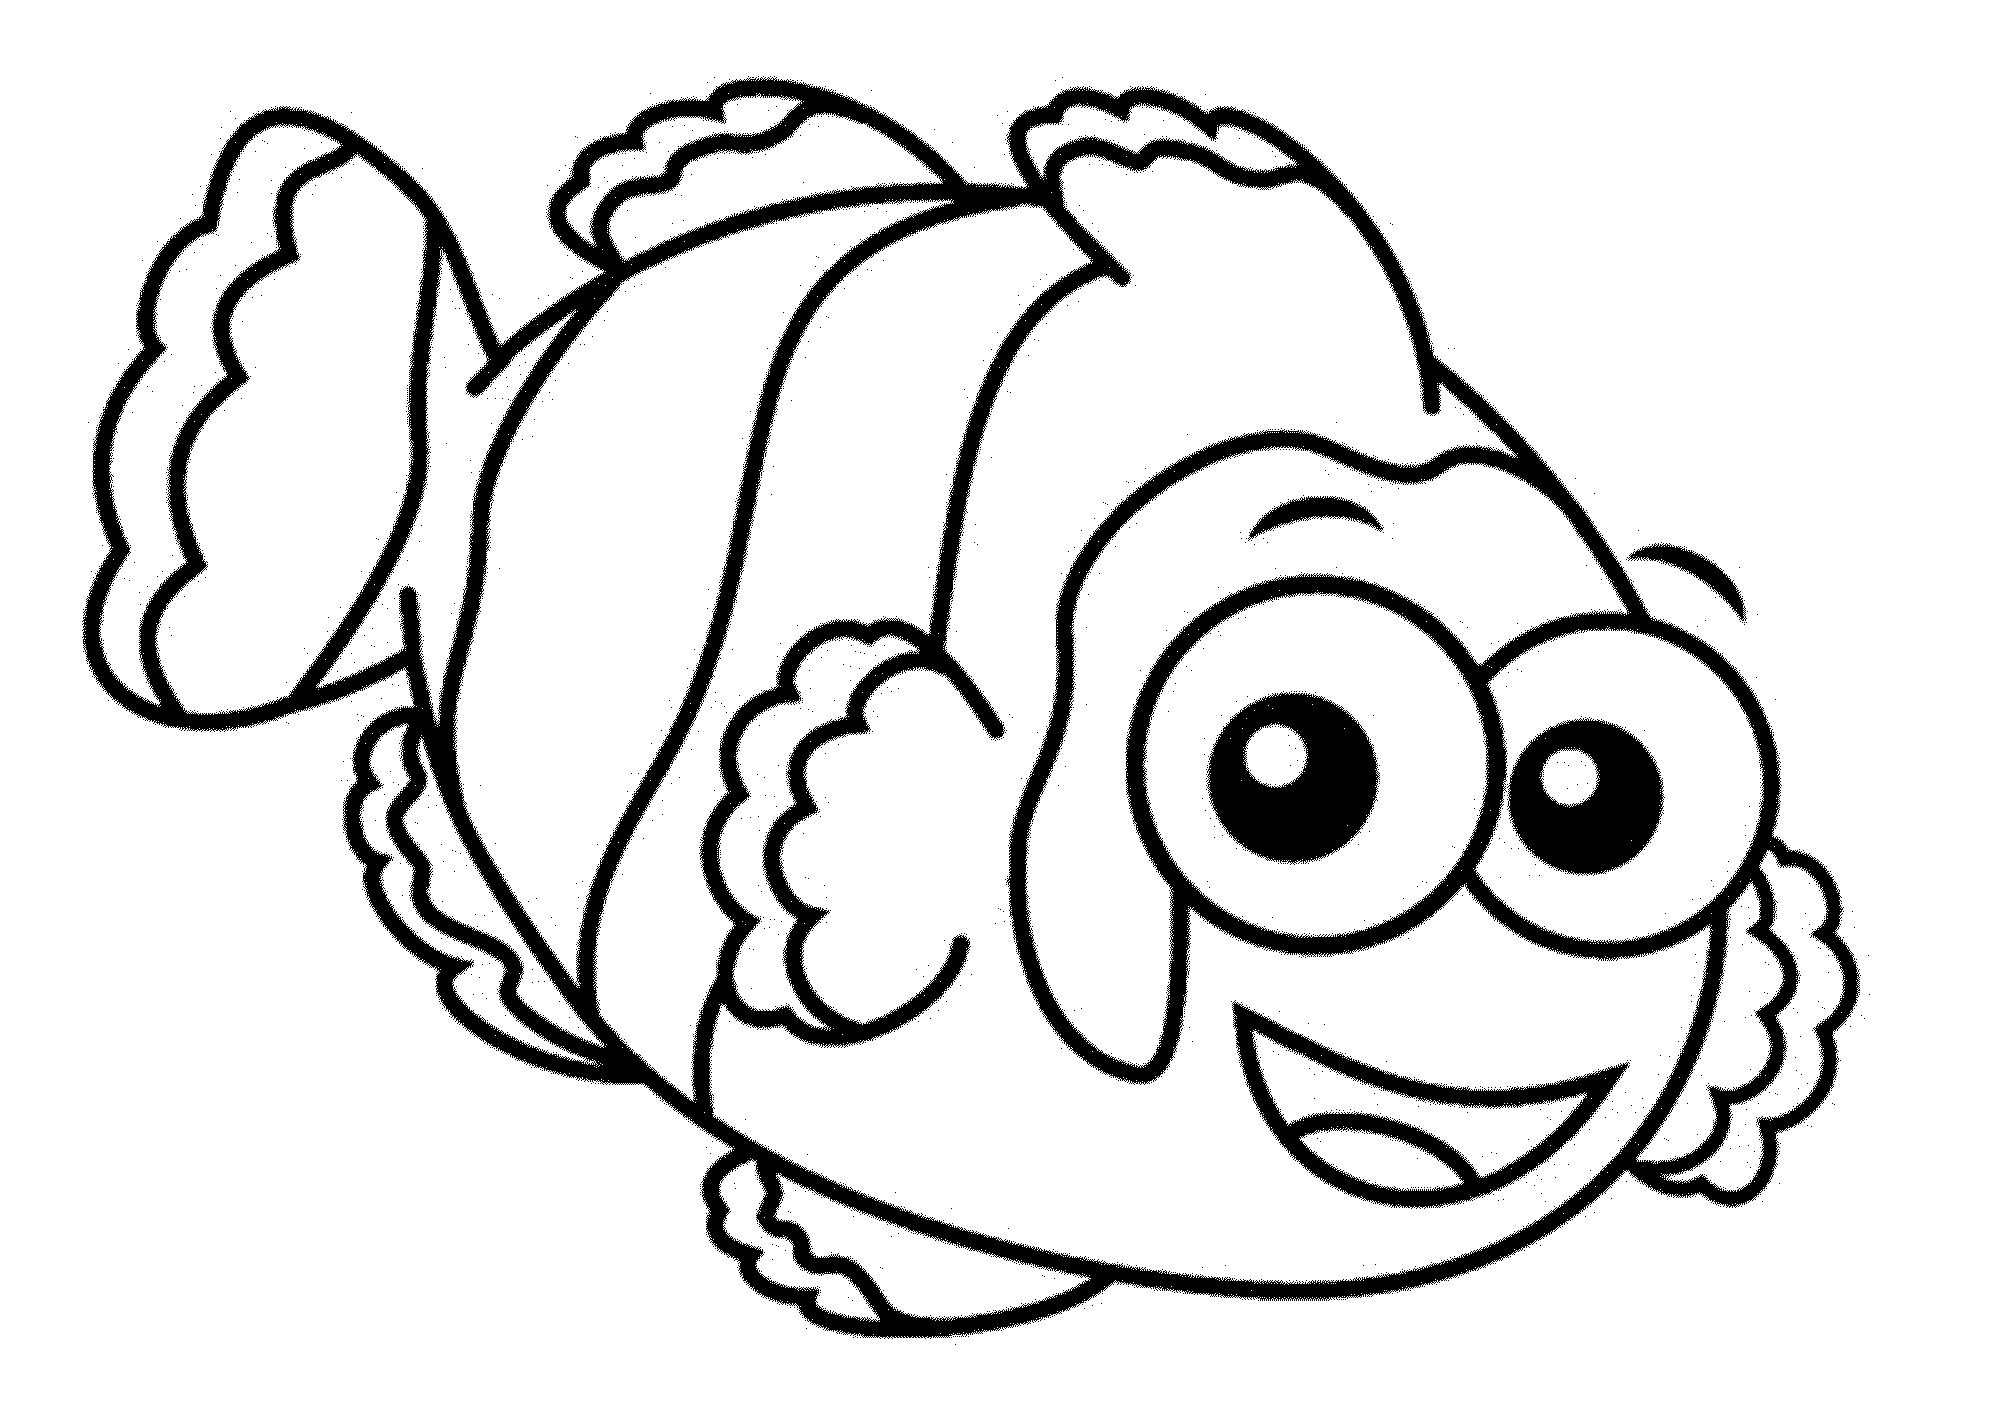 fish coloring pages to print fish drawing images at getdrawingscom free for personal to pages fish print coloring